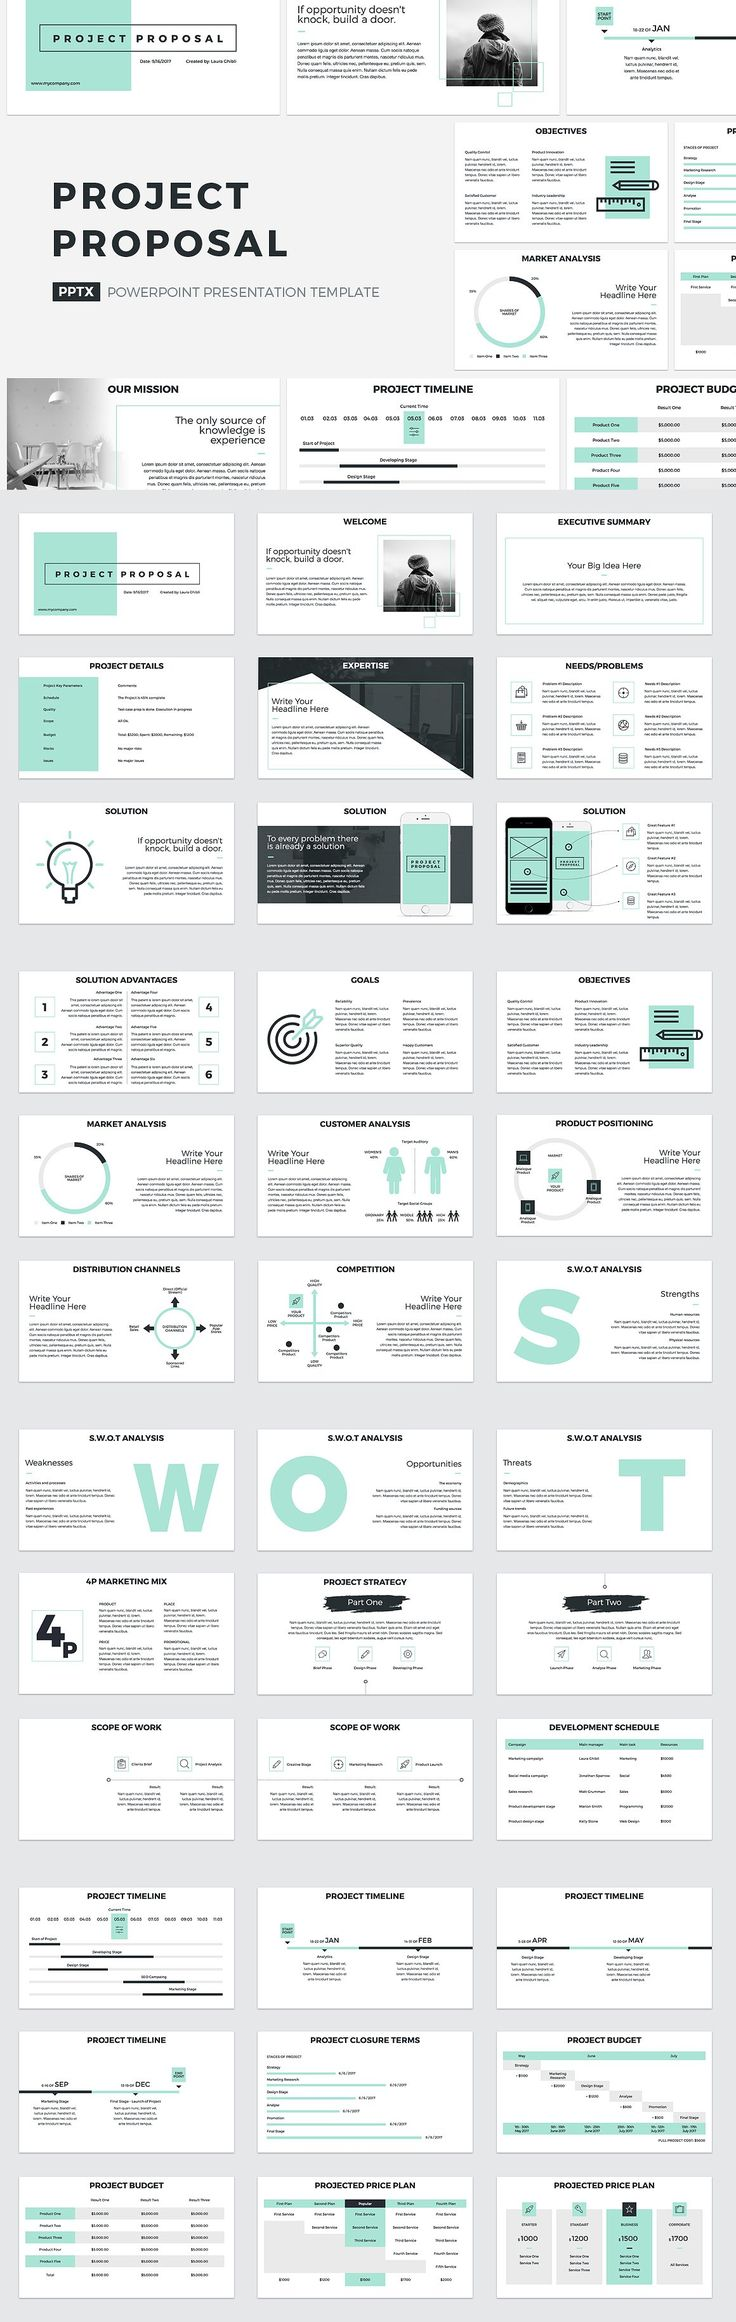 Project Proposal PowerPoint Template PDF